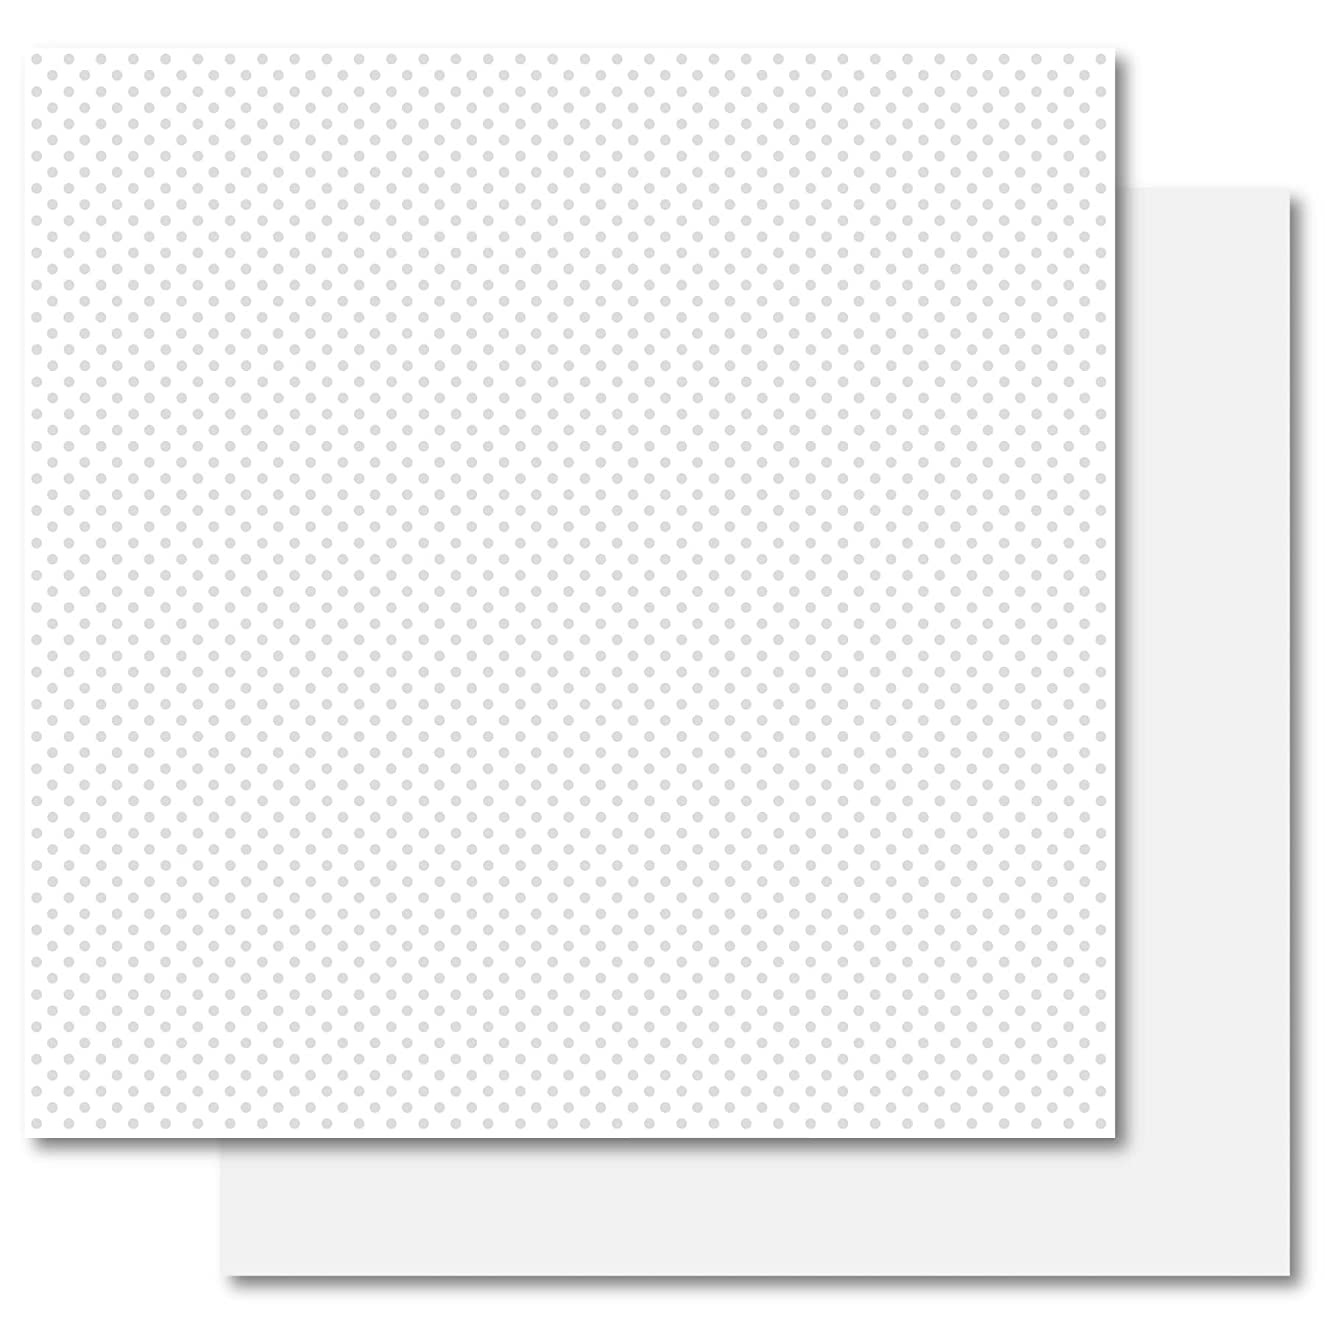 Best Creation 12-Inch by 12-Inch Basic Glitter Paper Simply Elegance, White Dot